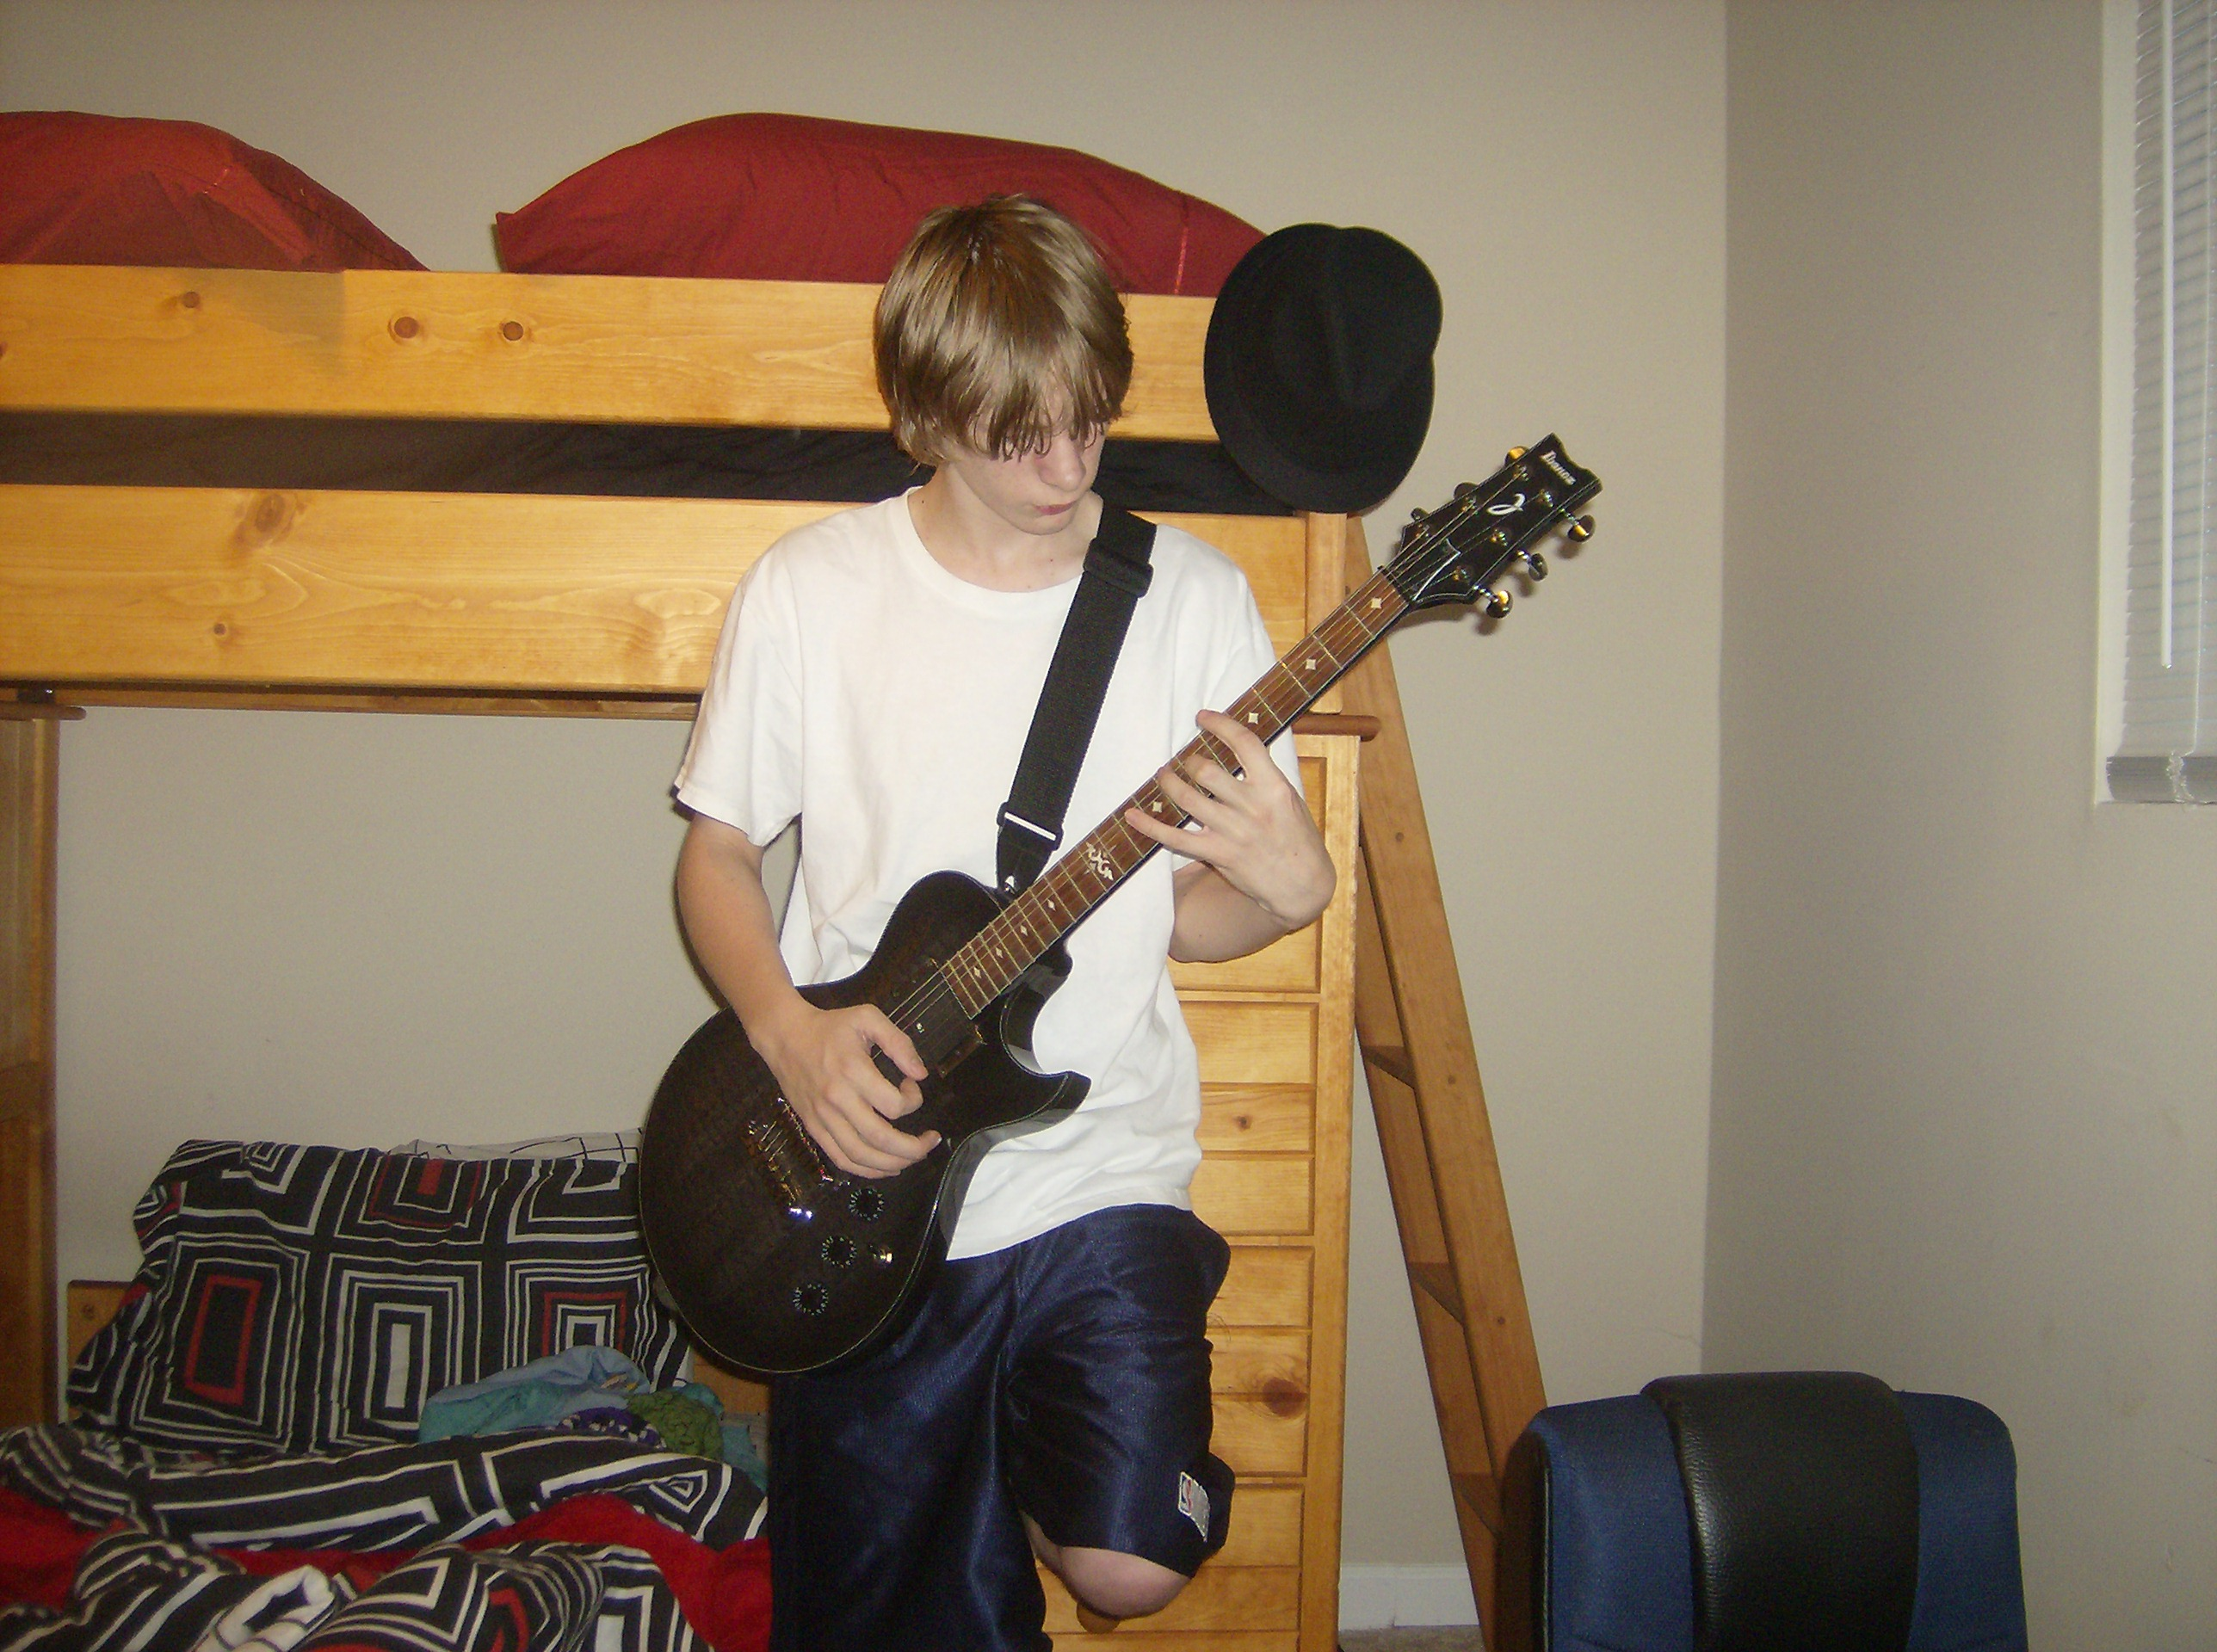 My Awesome Guitar Pose By Machzieightoh